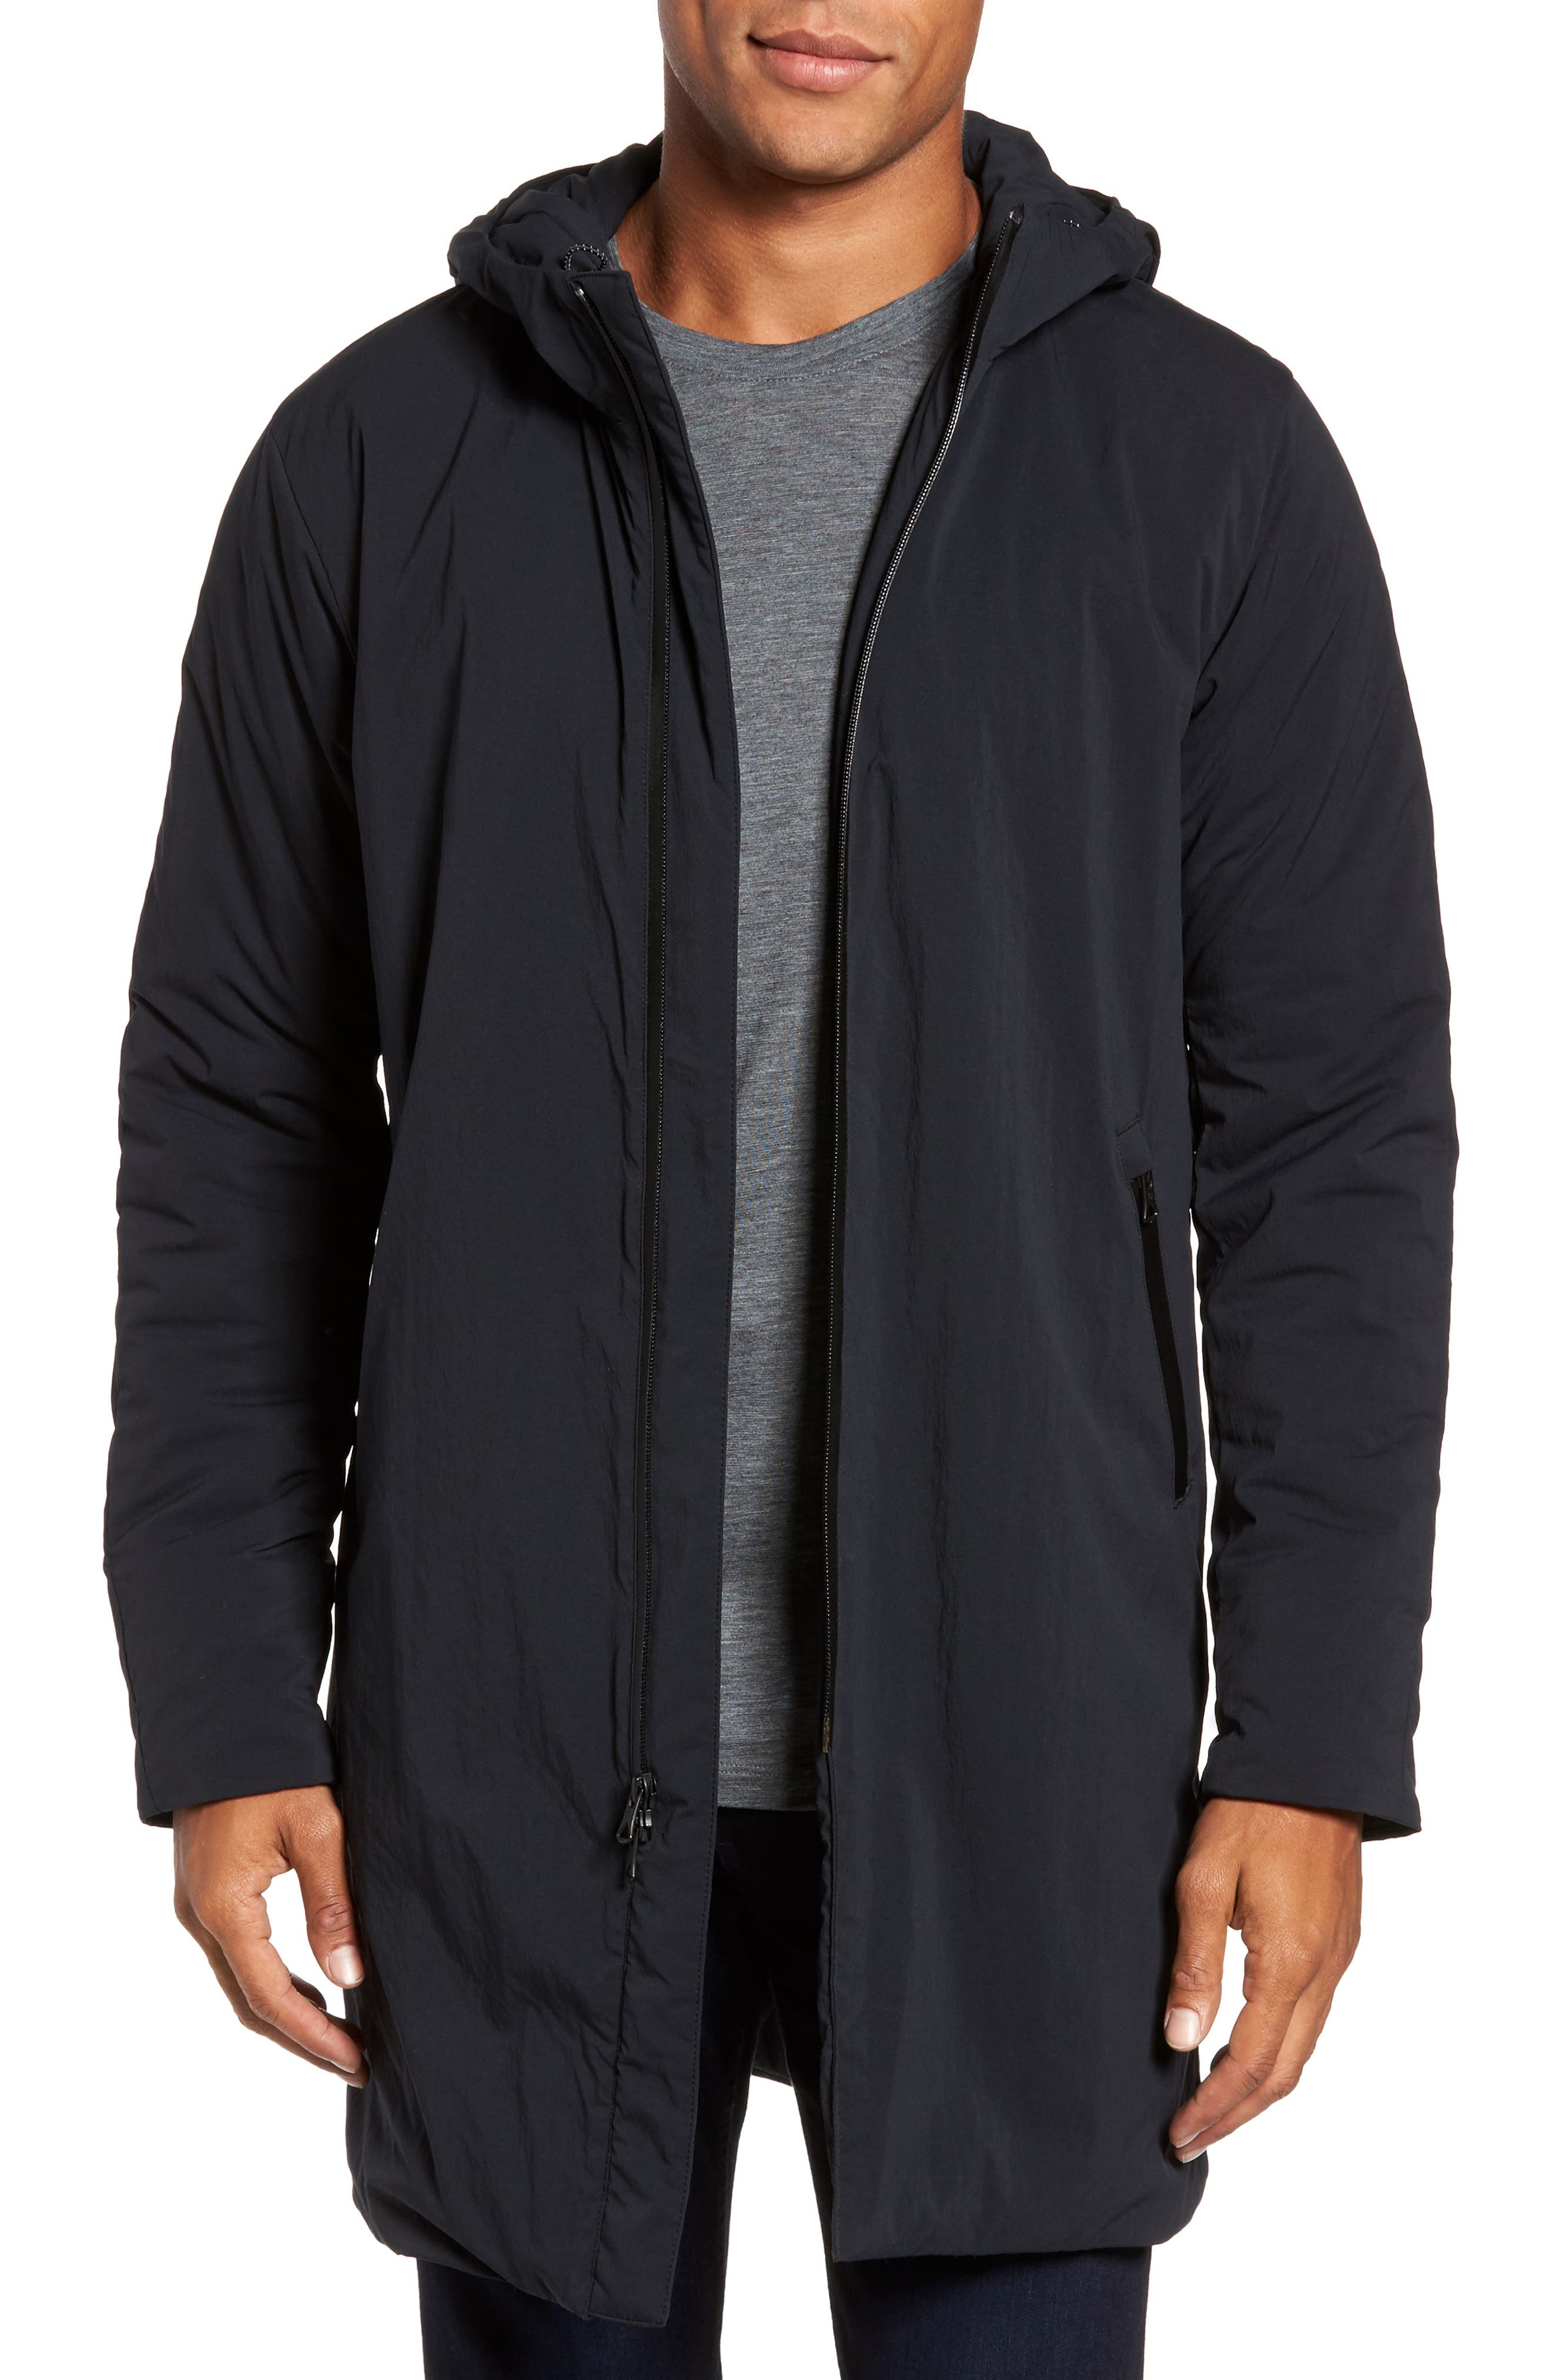 Insulated Trim Sideline Jacket,                             Main thumbnail 1, color,                             001